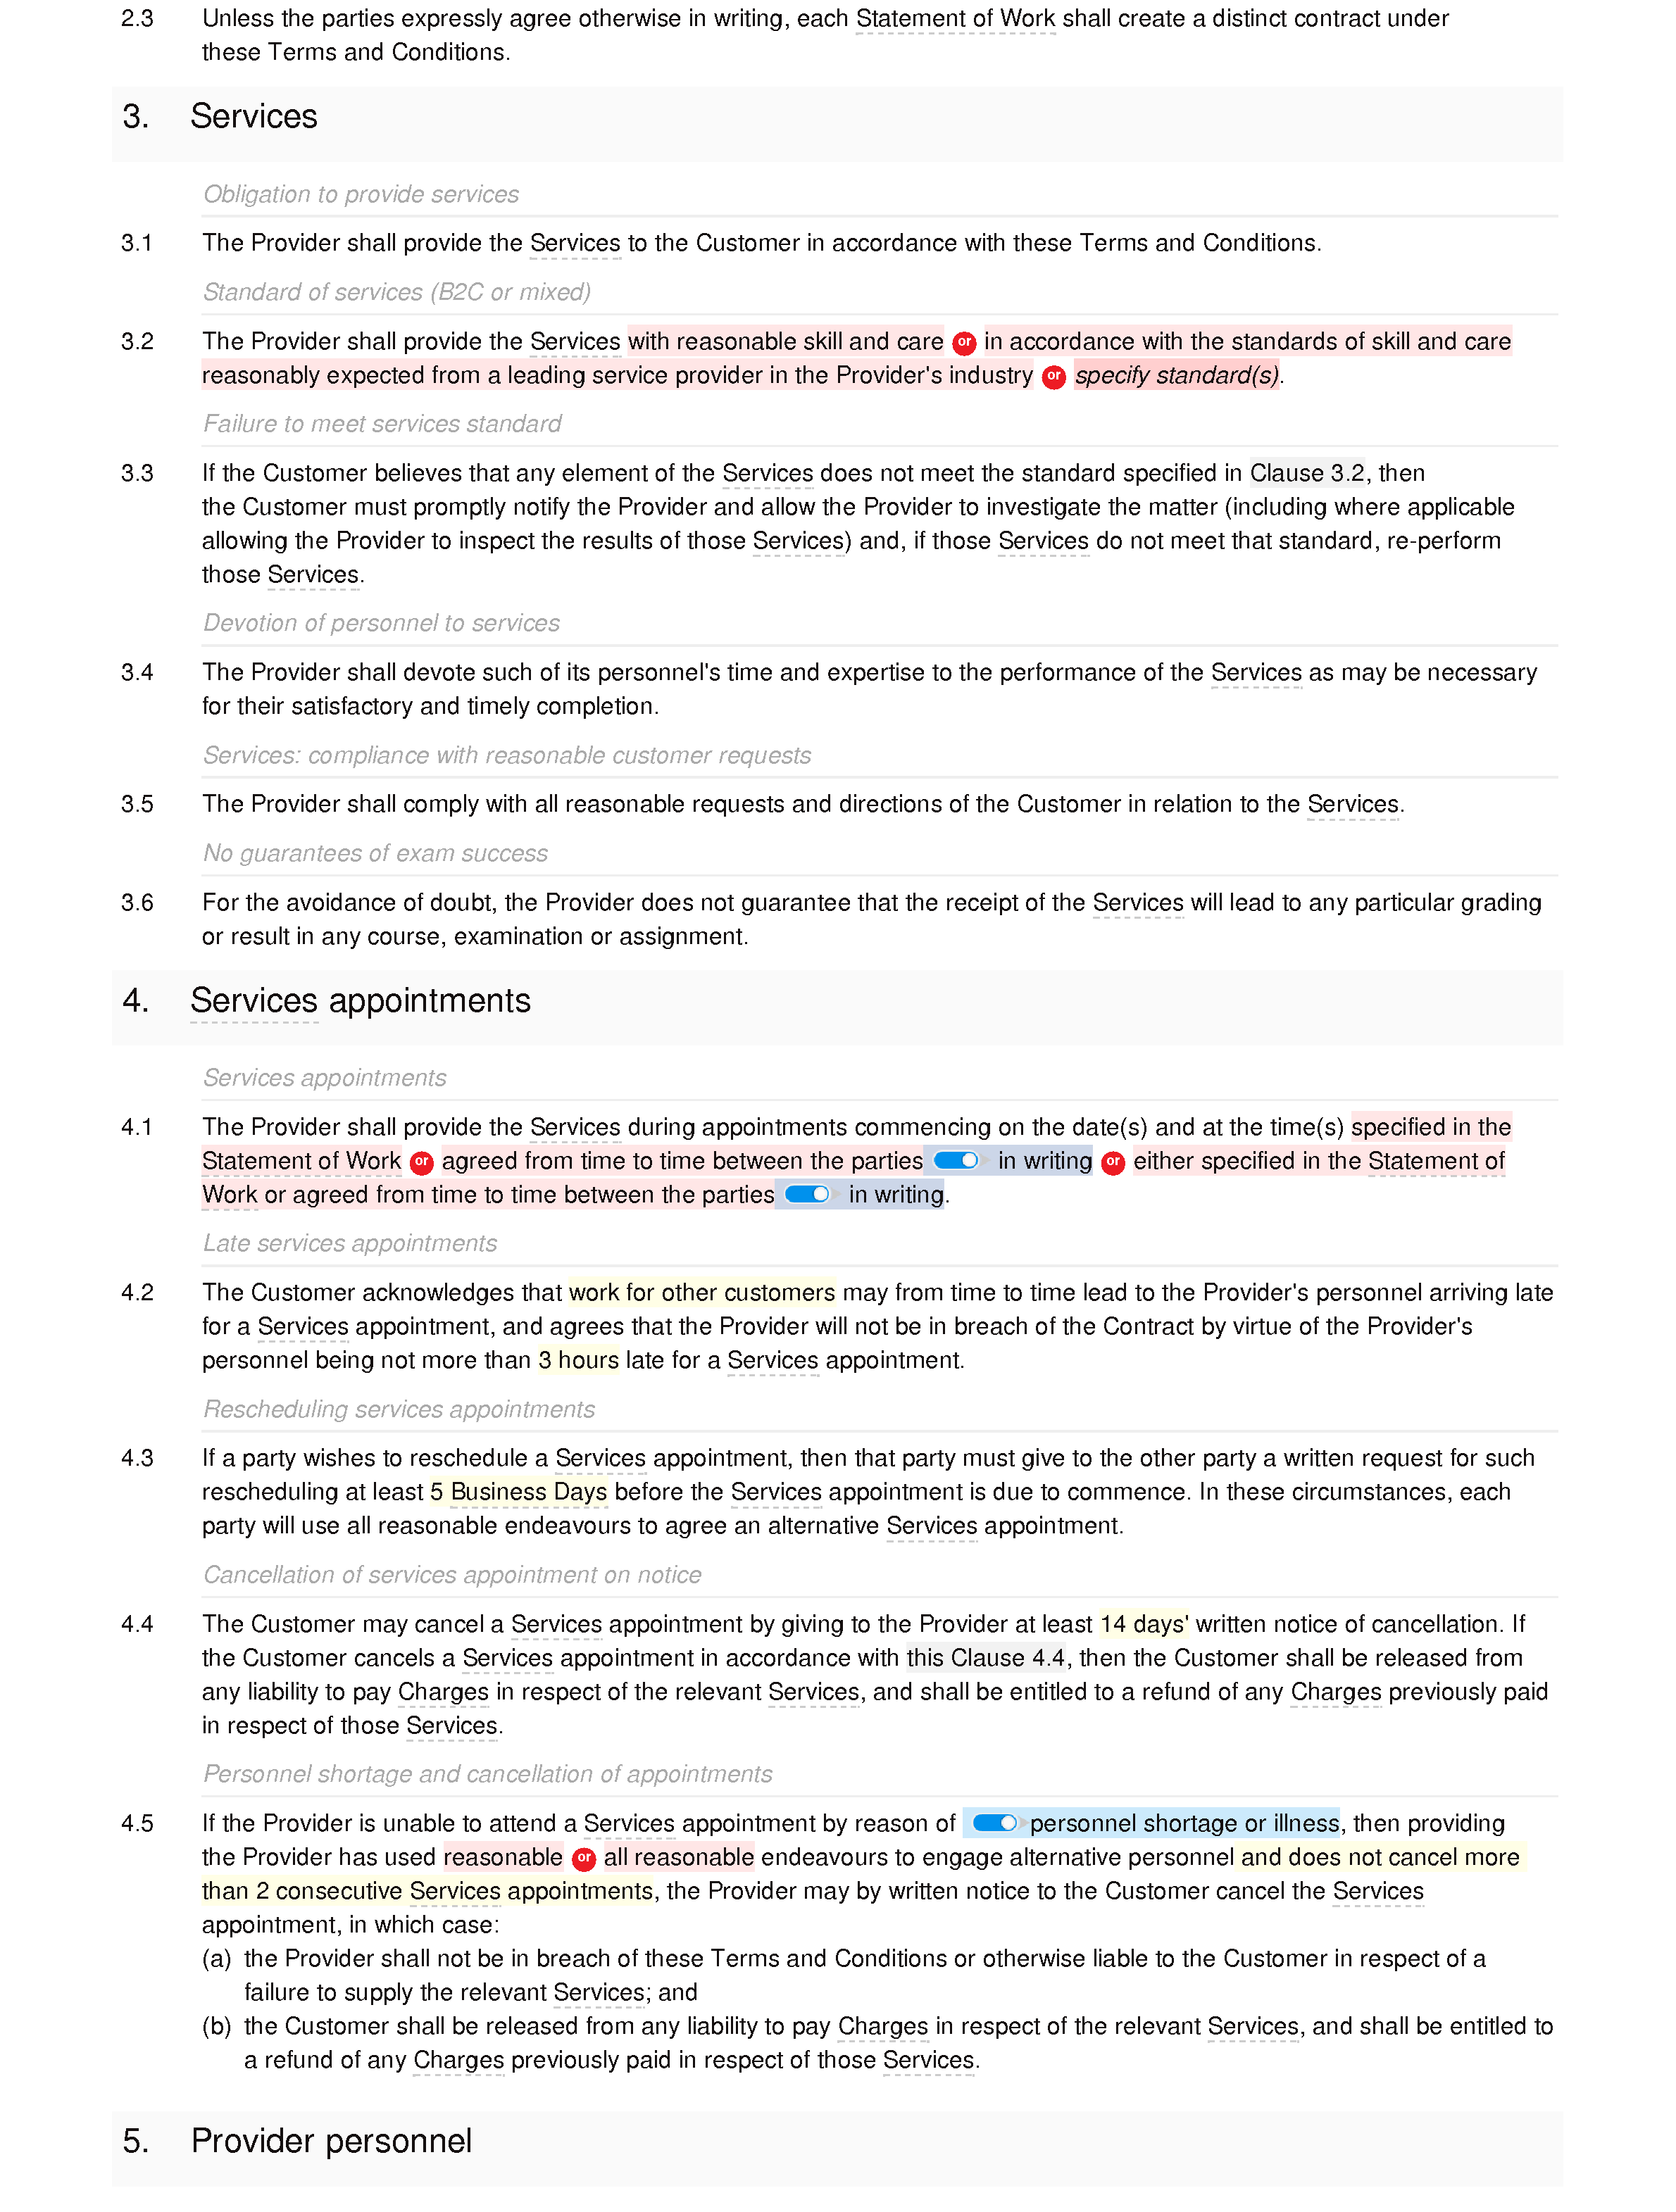 Home tutoring terms and conditions document editor preview